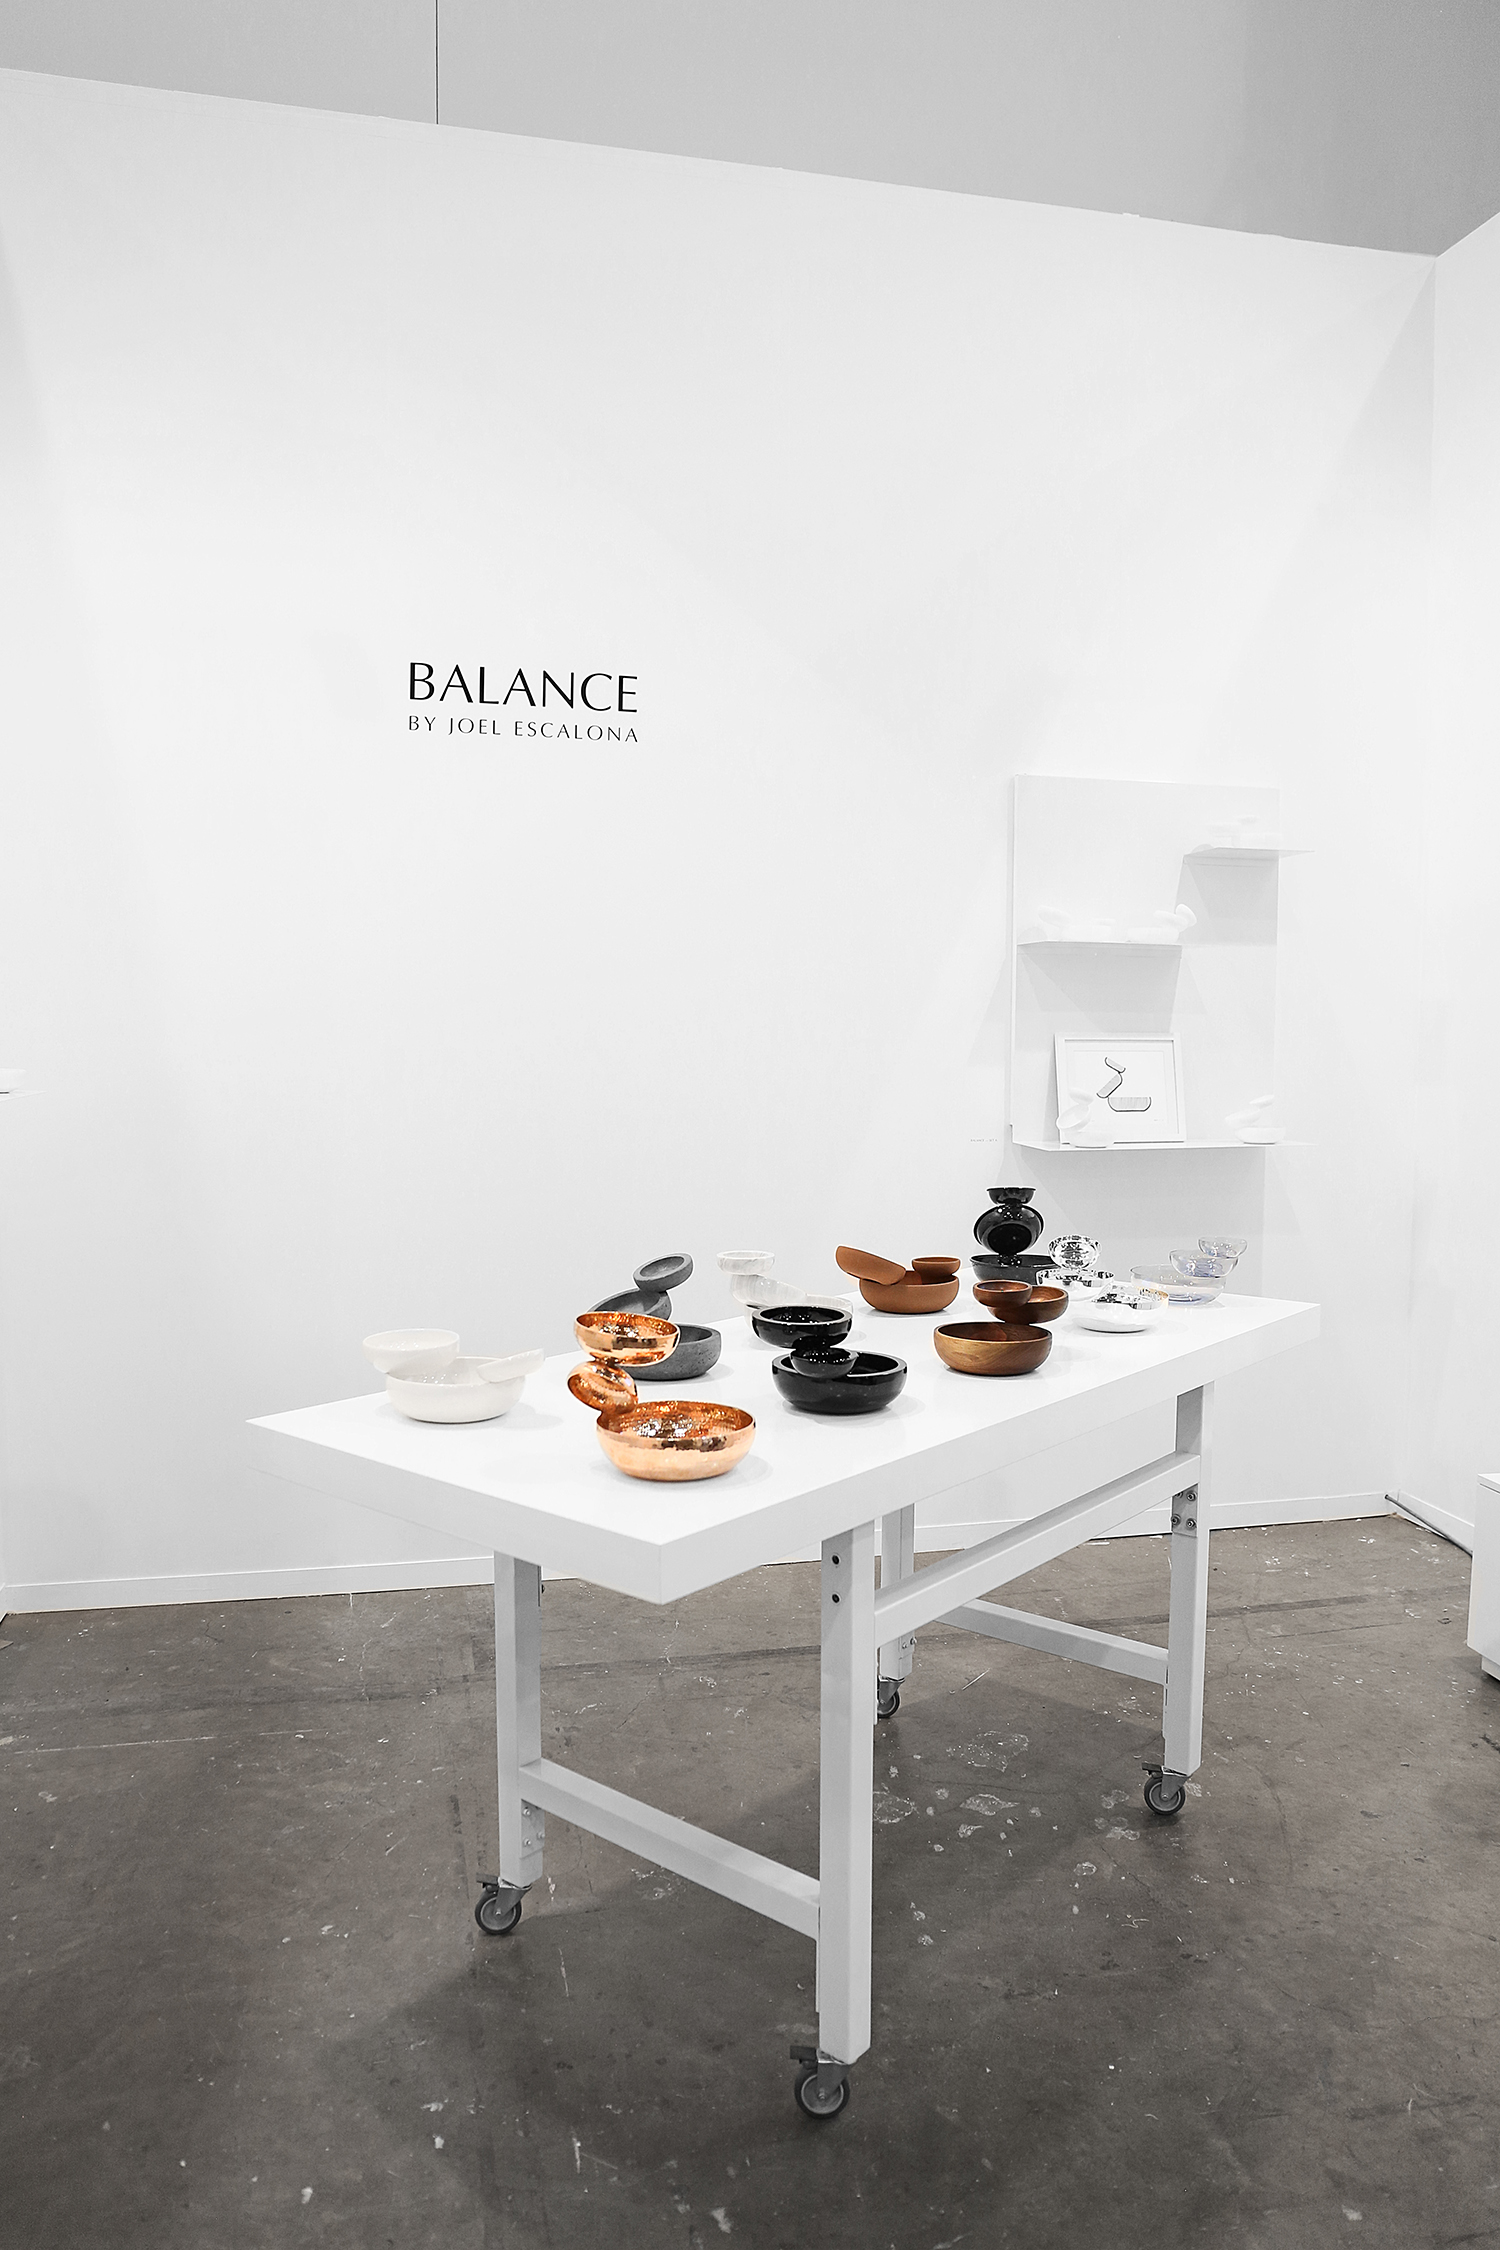 BALANCE BY JOEL ESCALONA AT ZONA MACO 2018 — 5.jpg